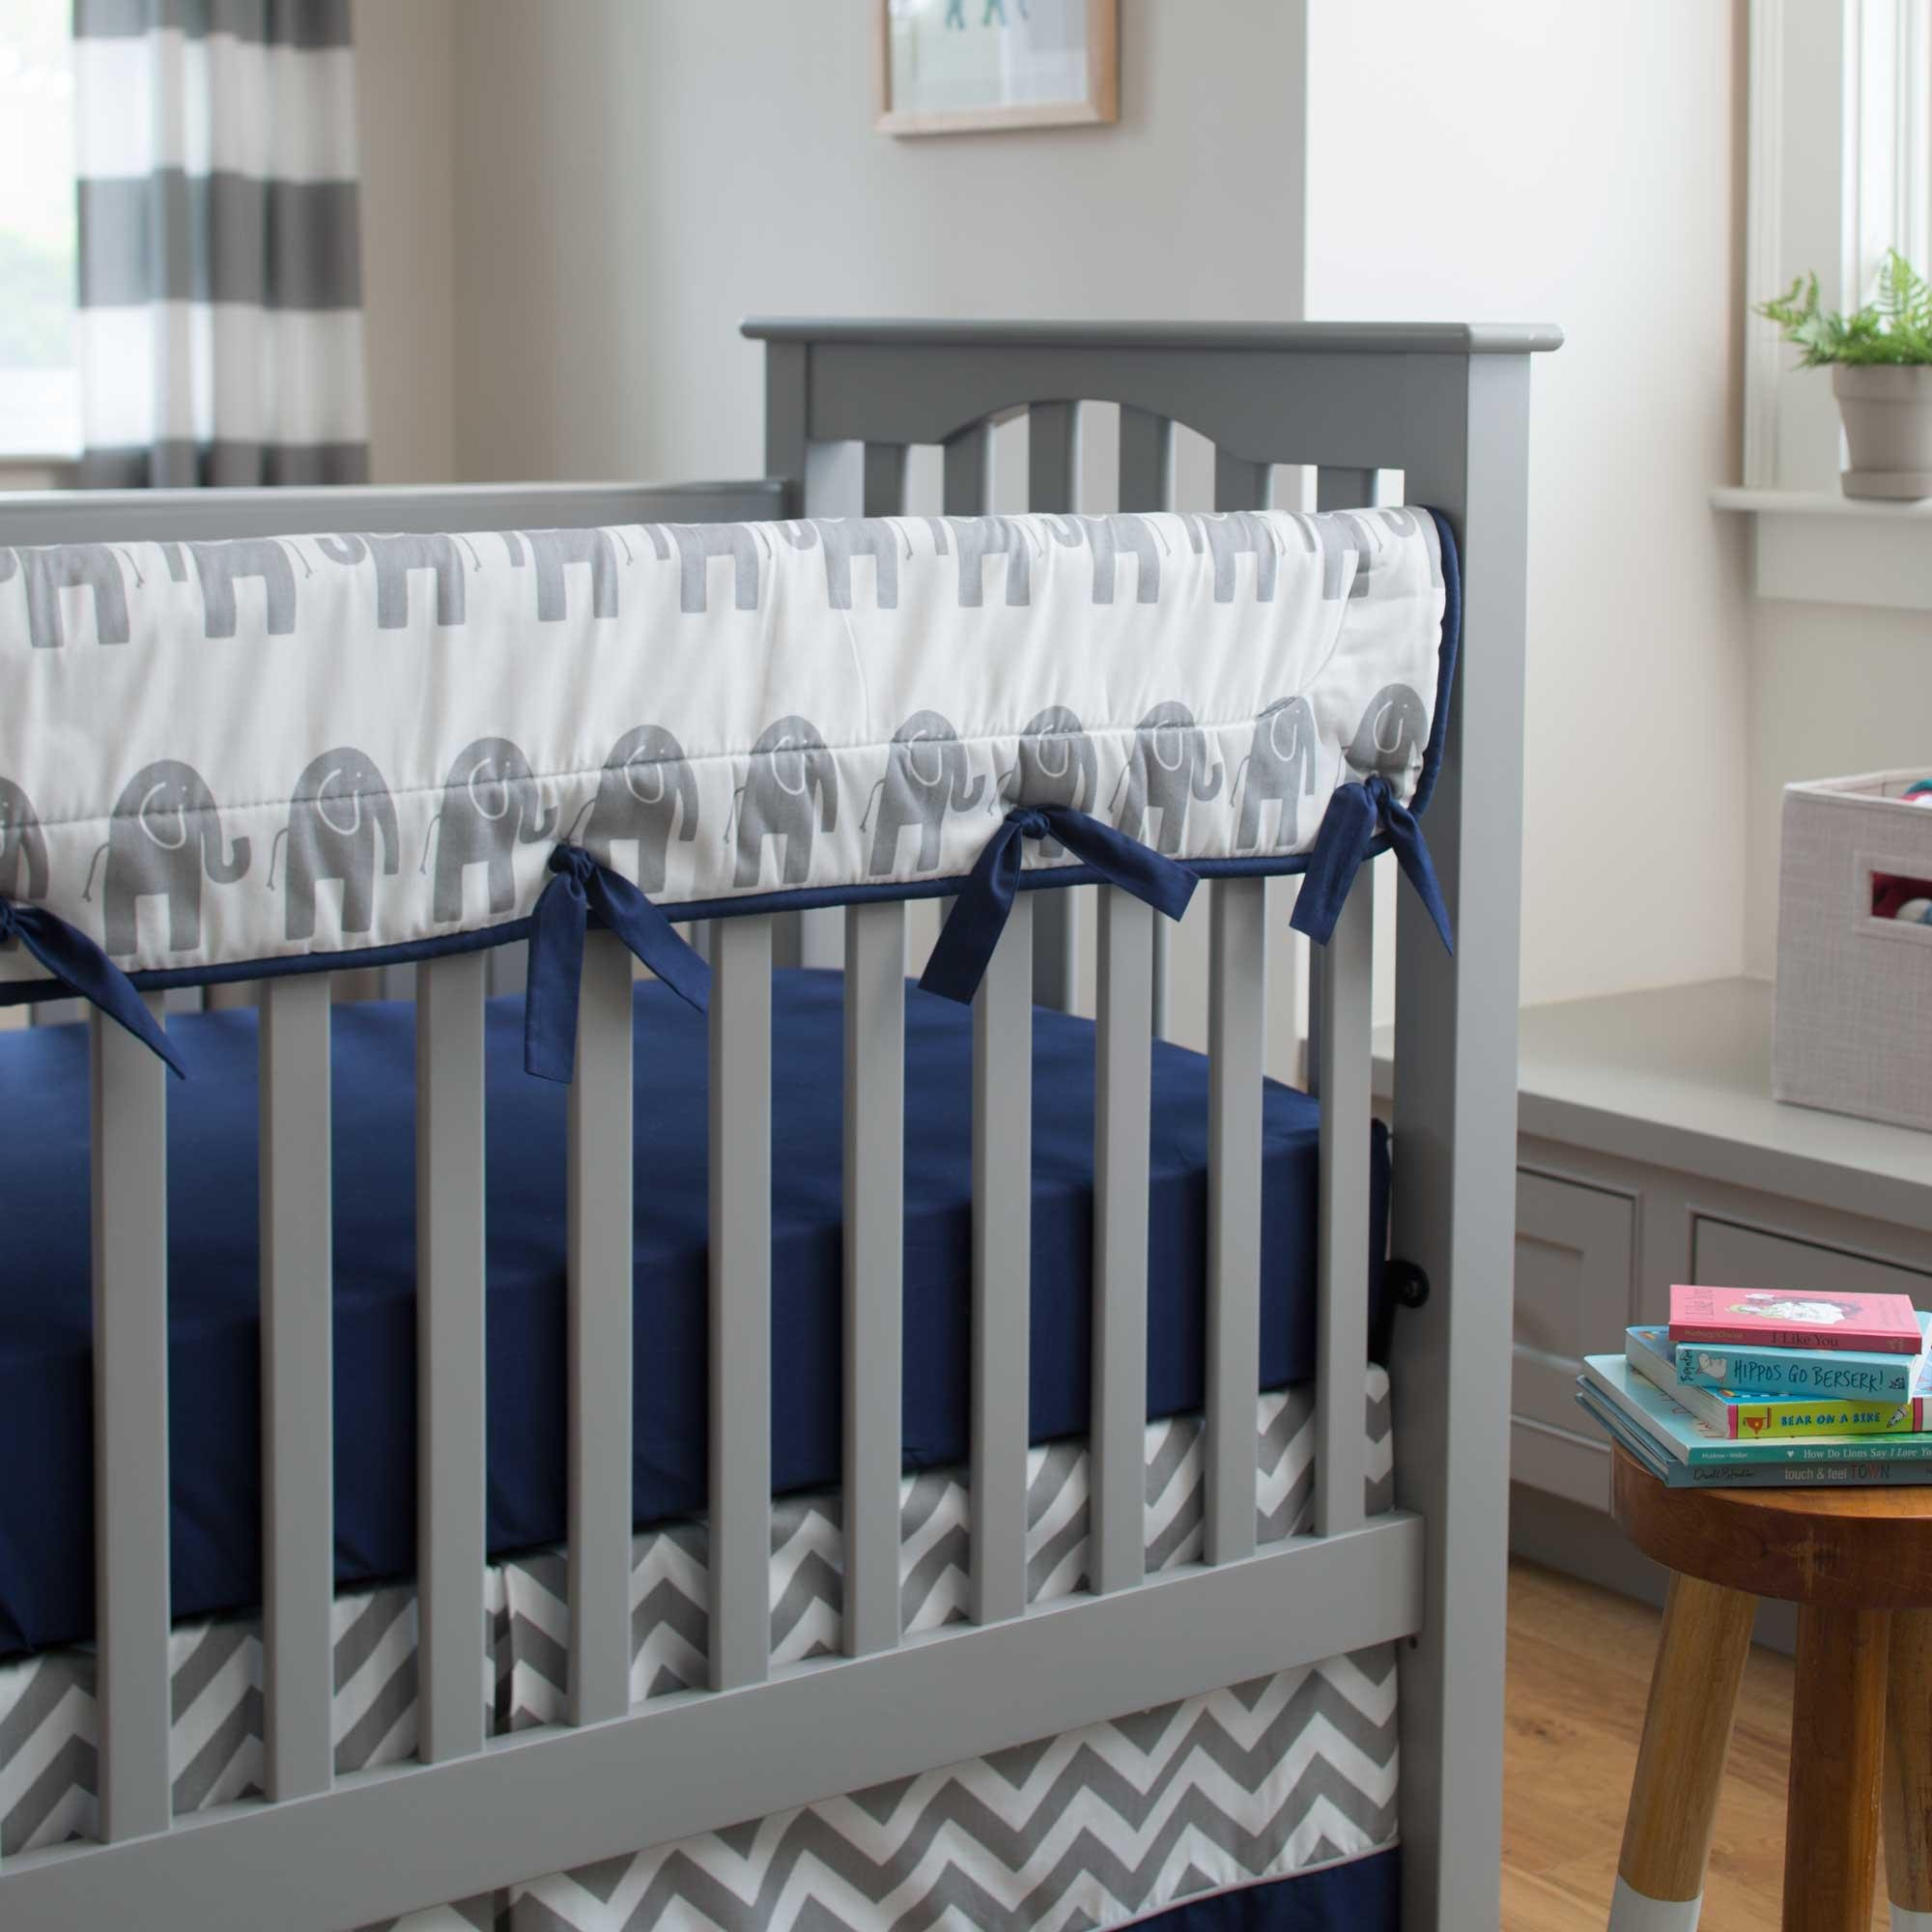 Carousel Designs Navy and Gray Elephants Crib Rail Cover by Carousel Designs